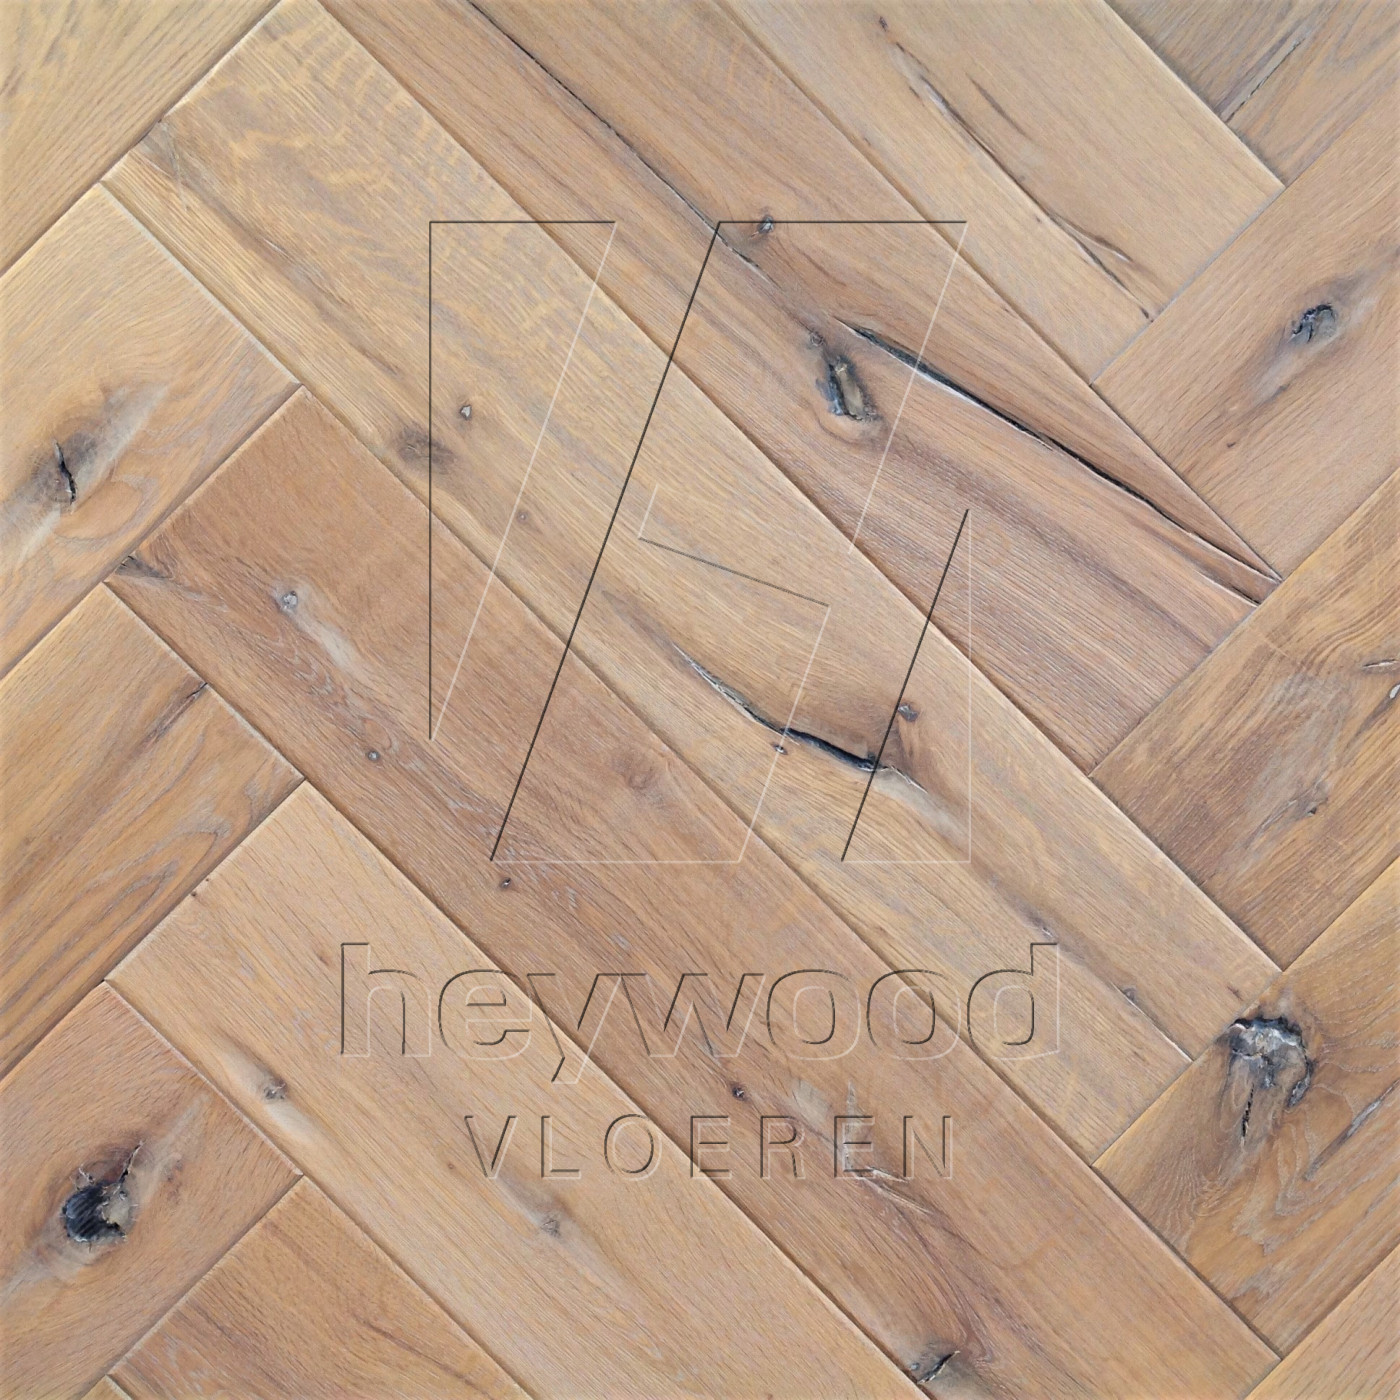 Antique Herringbone 'Gaula coloured' in Herringbone of Pattern & Panel Floors